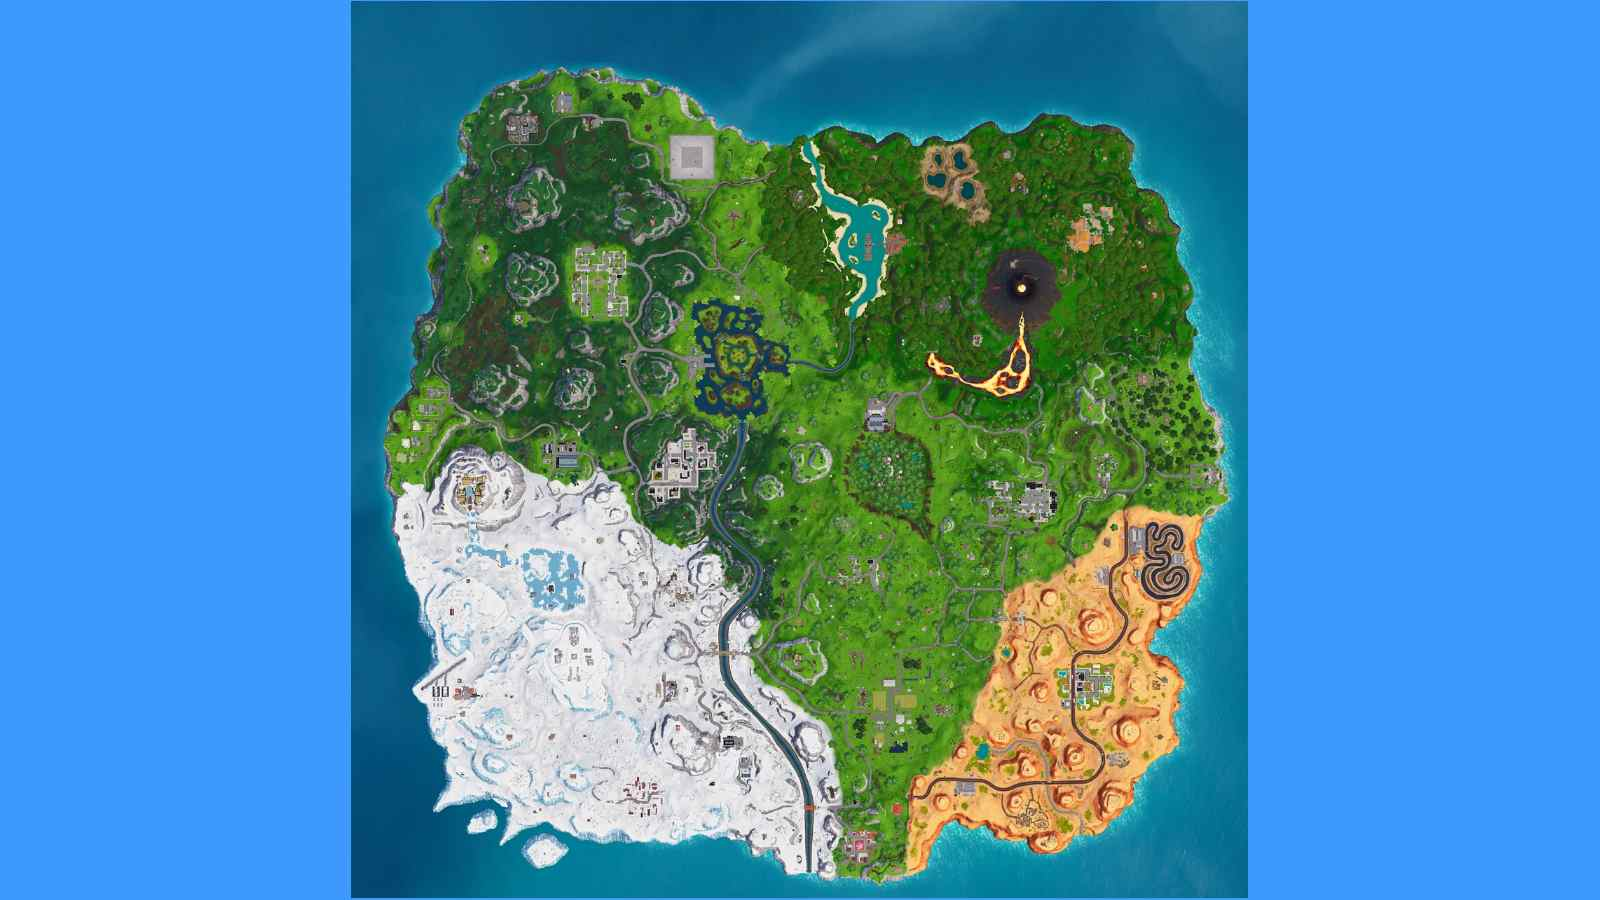 Fortnite Map Changes after 17.21 update: Center POI changes, and more